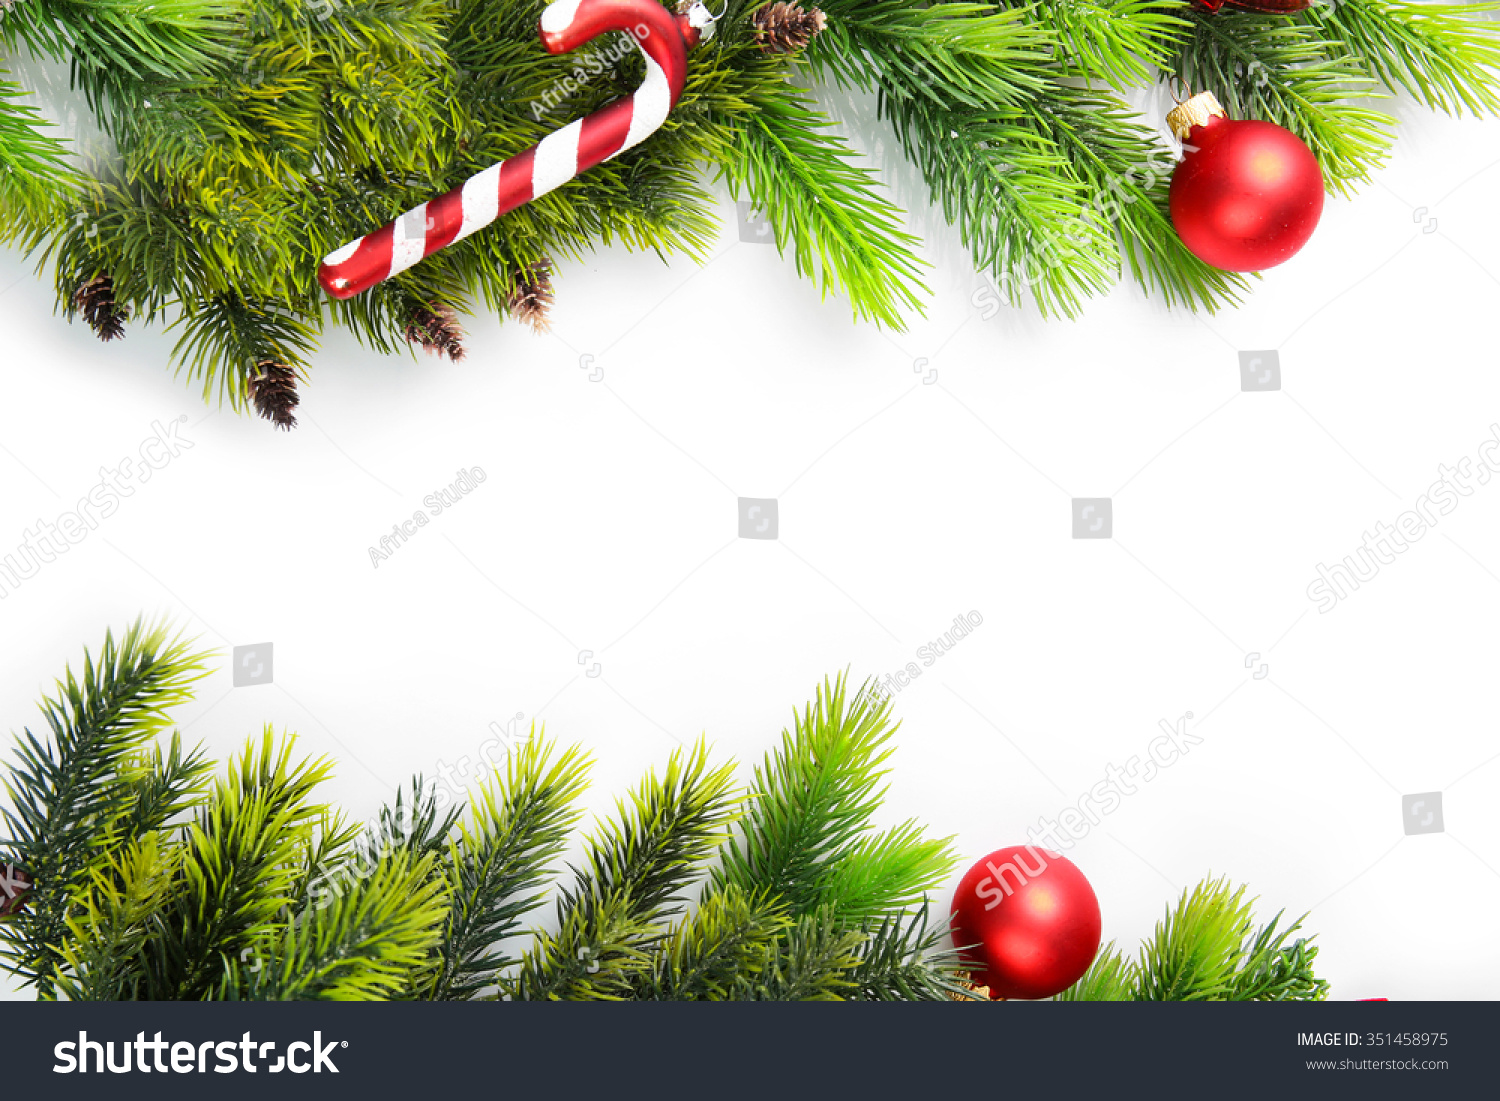 Christmas Tree Branch Red Berries Decorations Stock Photo (Edit Now ...